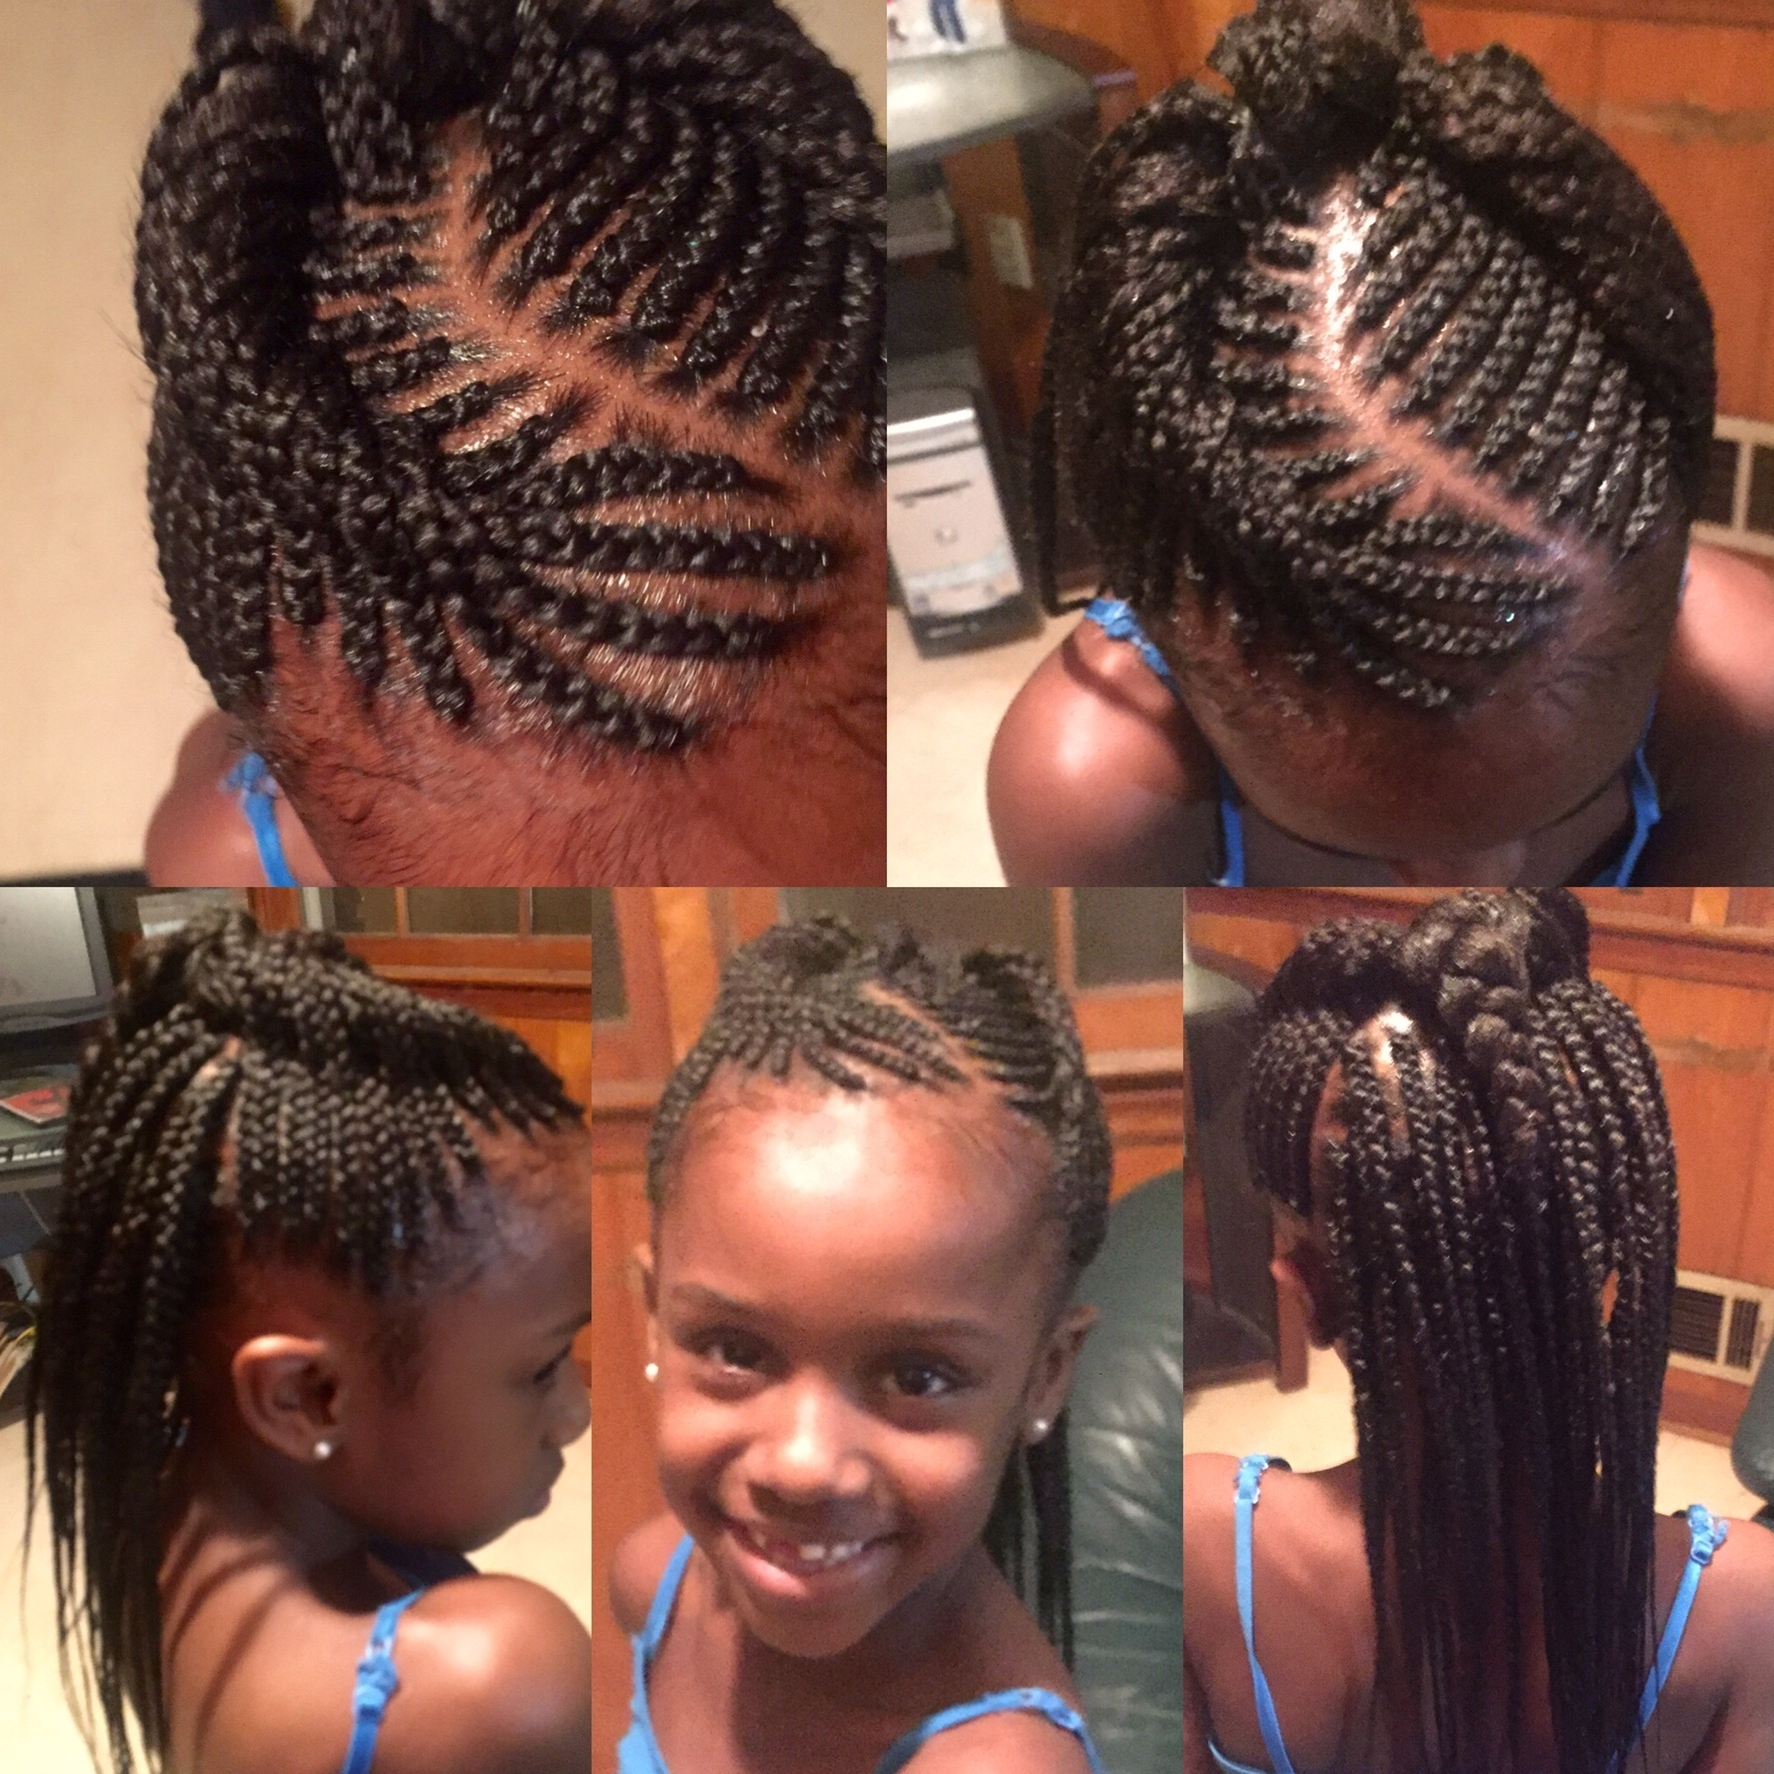 Cornrow Braid Hairstyles For Kids Amusing Hairstyles For Kids Braids In Recent Black Cornrows Hairstyles (View 5 of 15)